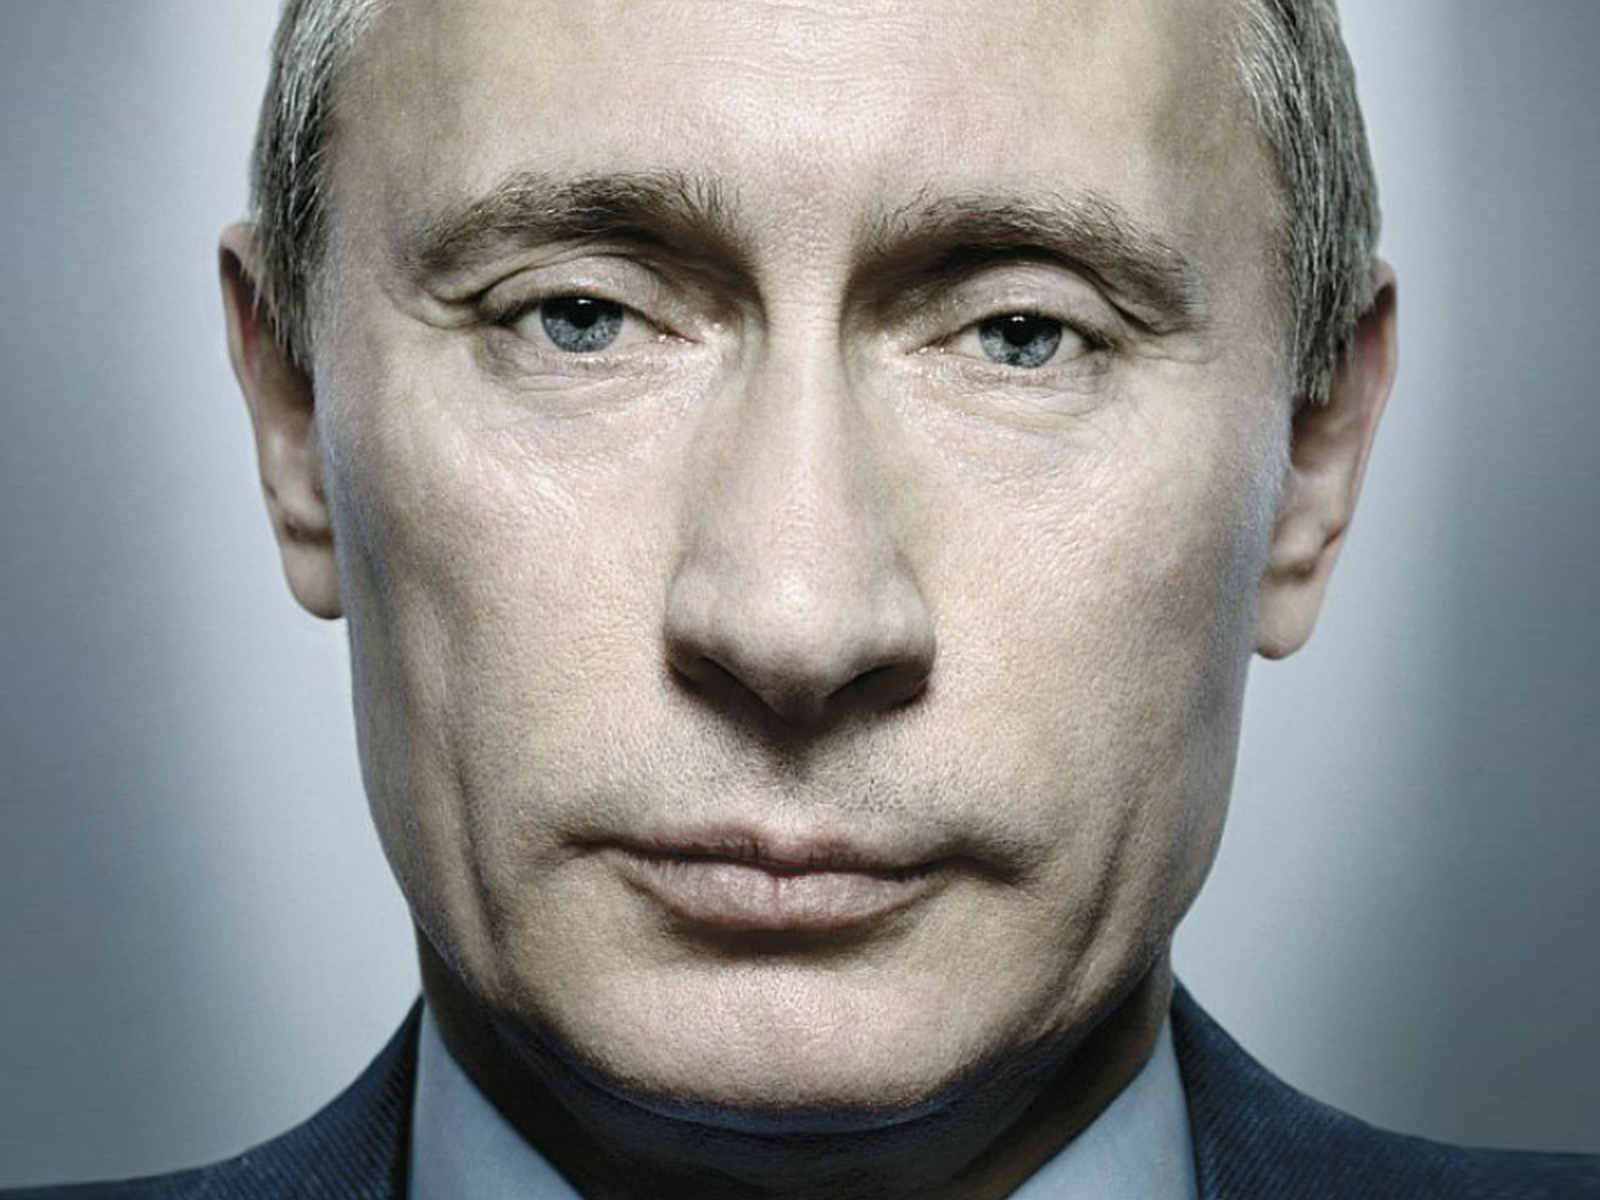 5643231-vladimir-putin-wallpapers